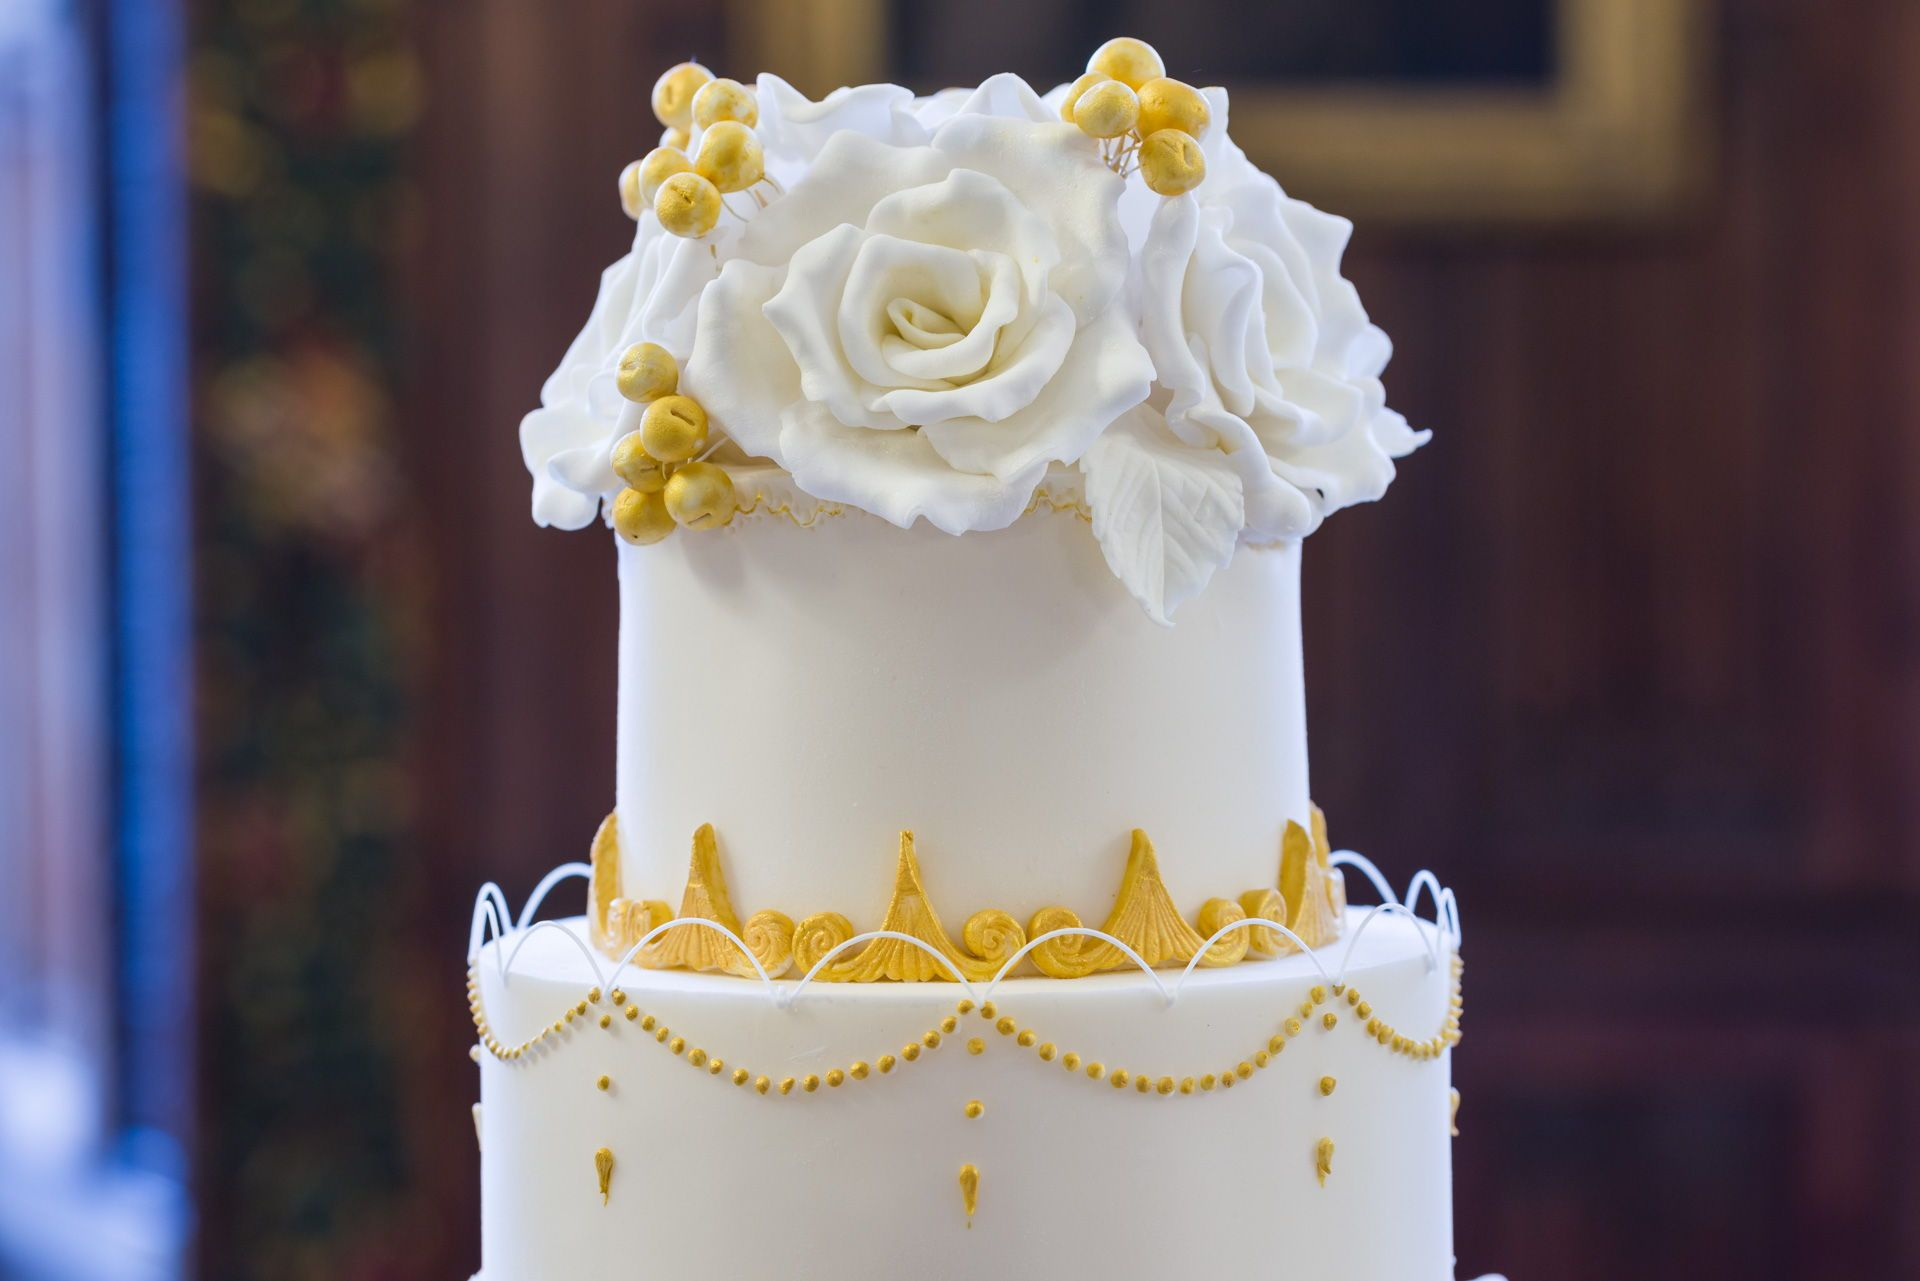 Meghan Markle Wedding Cake.Our Expert Prediction For Prince Harry And Meghan Markle S